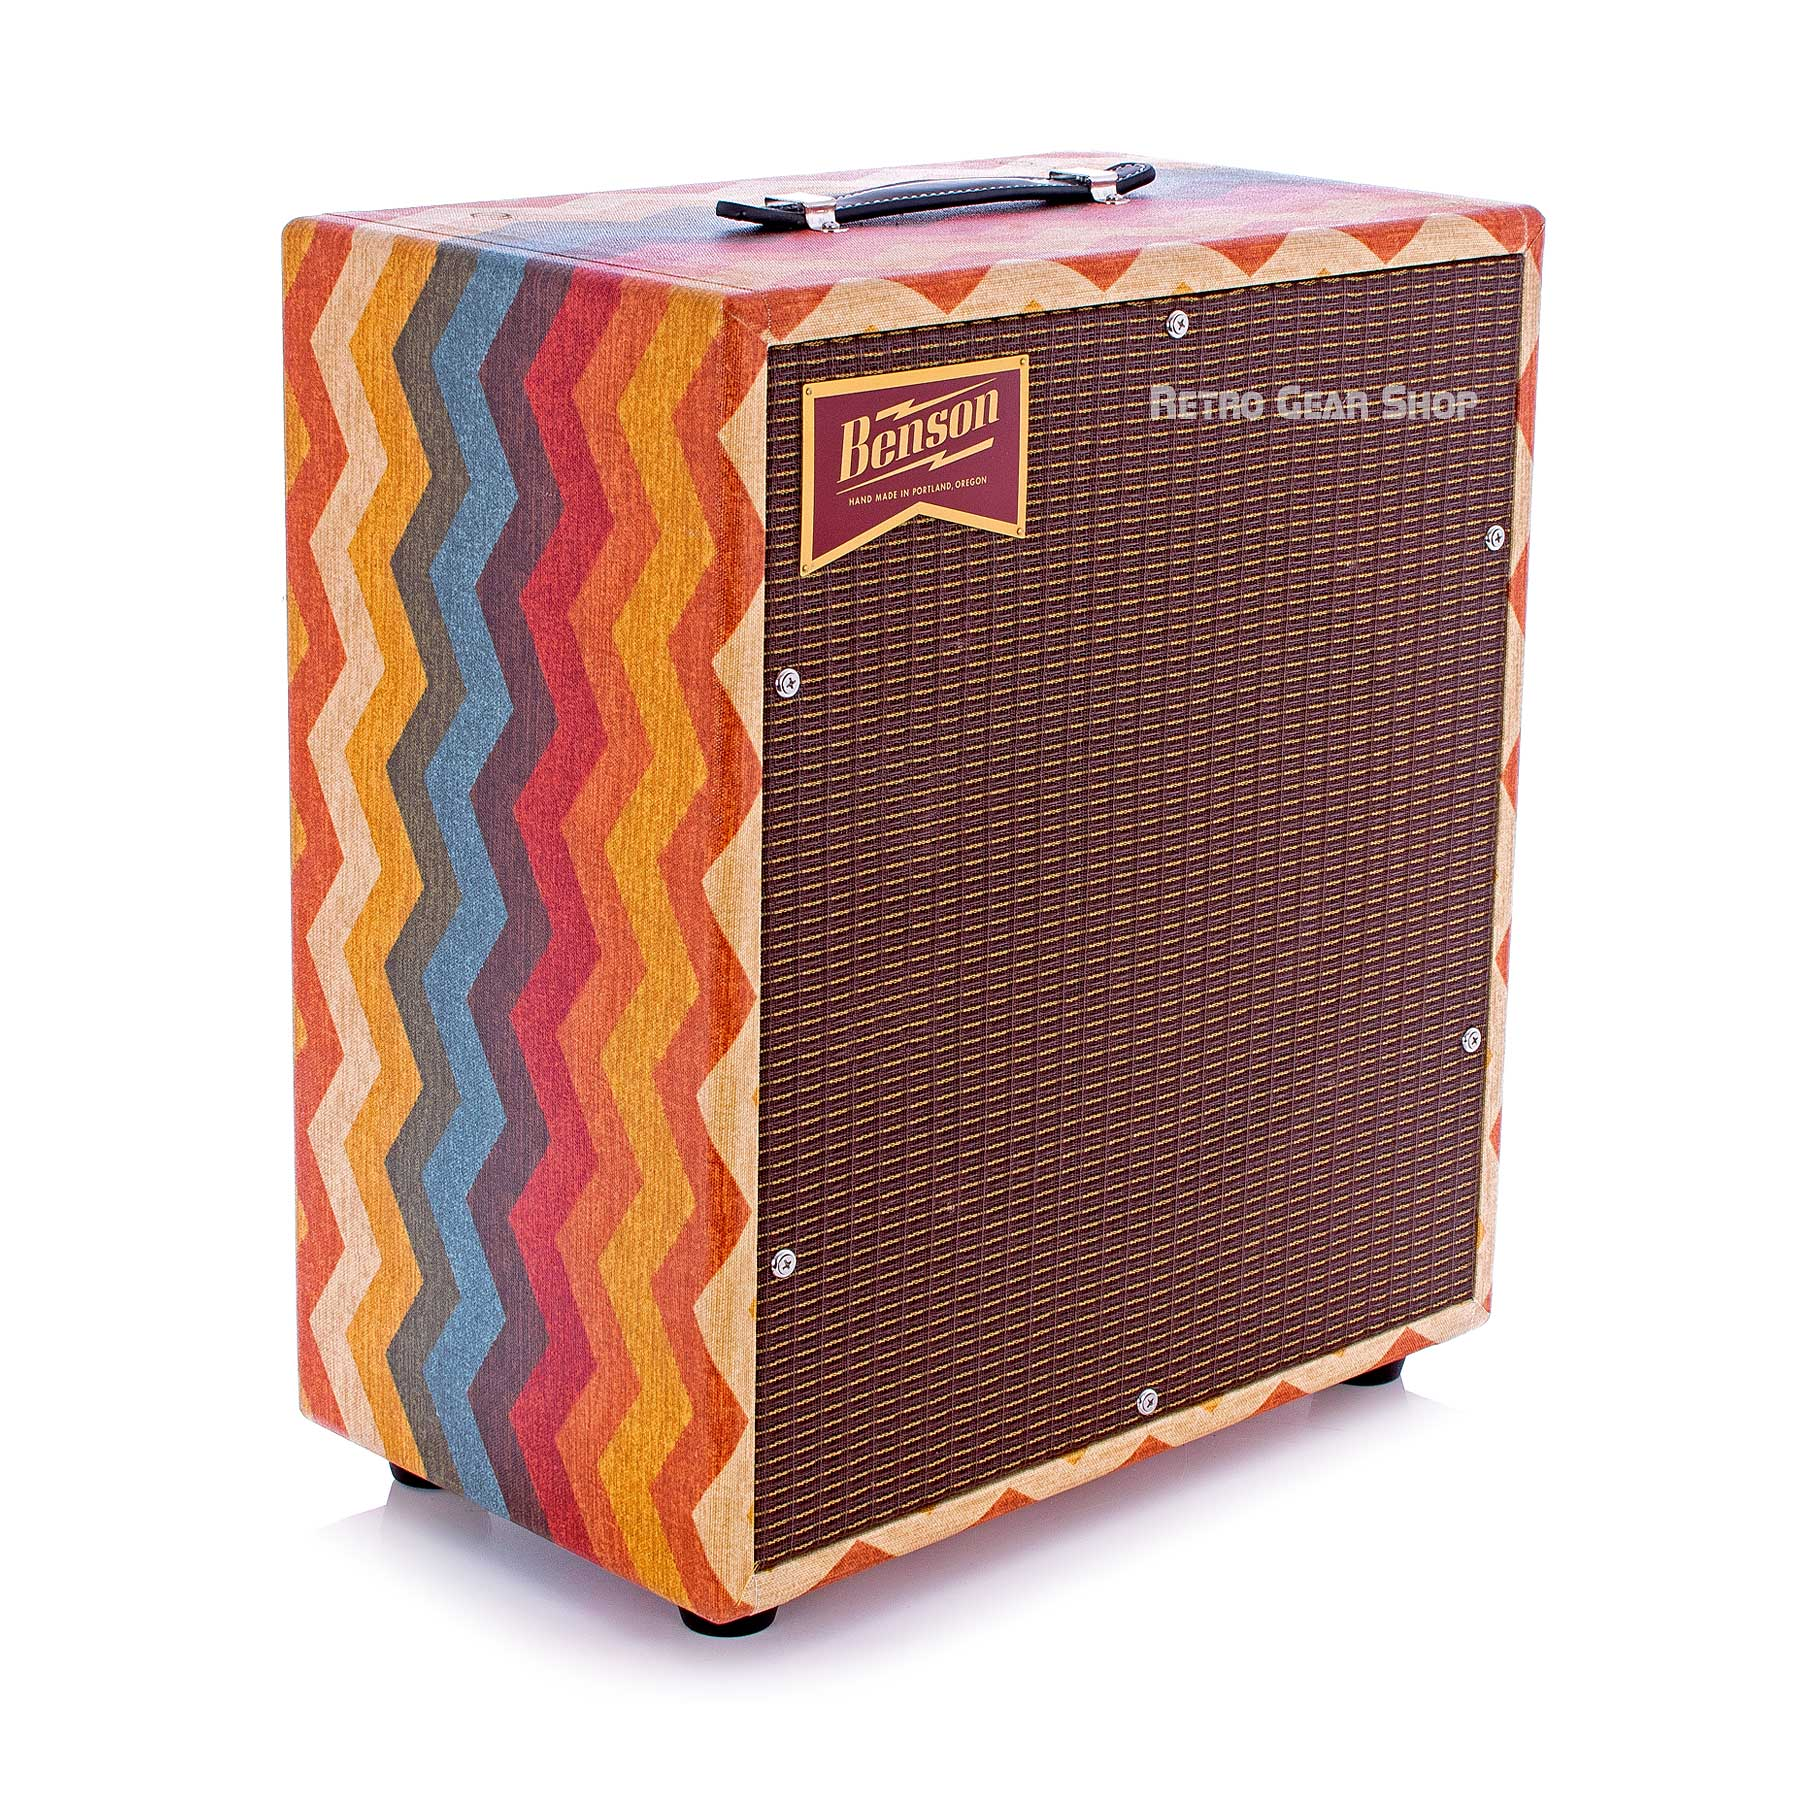 Benson Amps Monarch 1x12 Cab Old Mexico Oxblood Grill Top Left